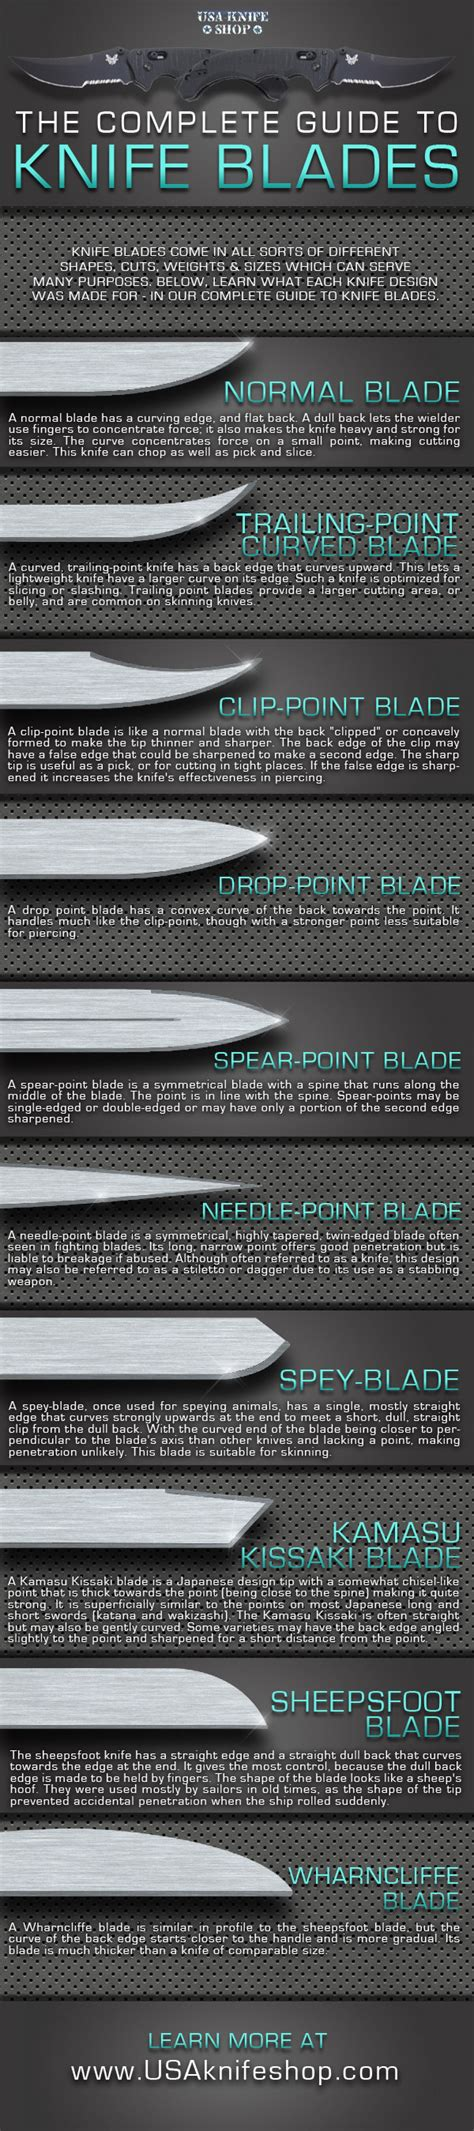 guide to knives the complete guide to knife blades infographic best